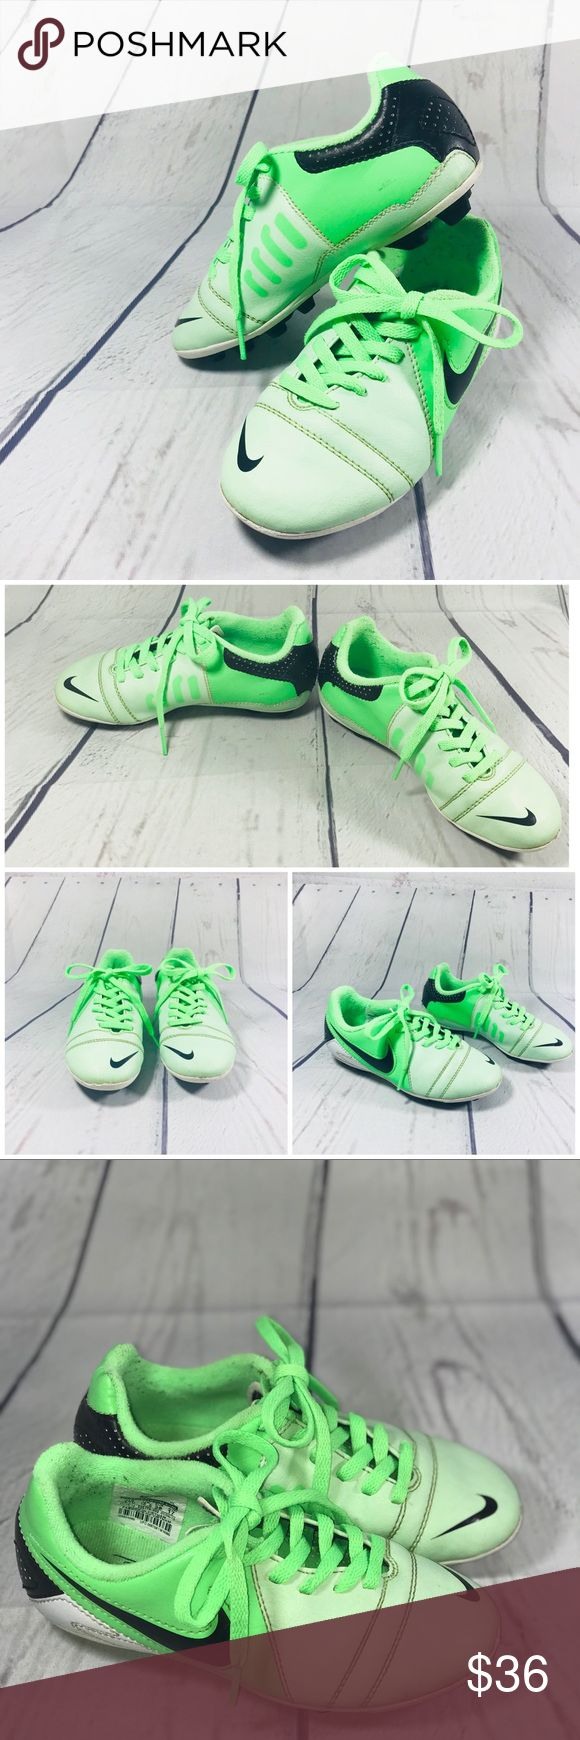 "Nike CTR360 MINT-GREEN Kids Soccer Cleats Nike CTR360 MINT GREEN Kids Soccer Cleats Size 11 C US   Brand: Nike  Style: CTR360   Color:  Green / white   ""Used Without Box"" Nike Shoes Sneakers"